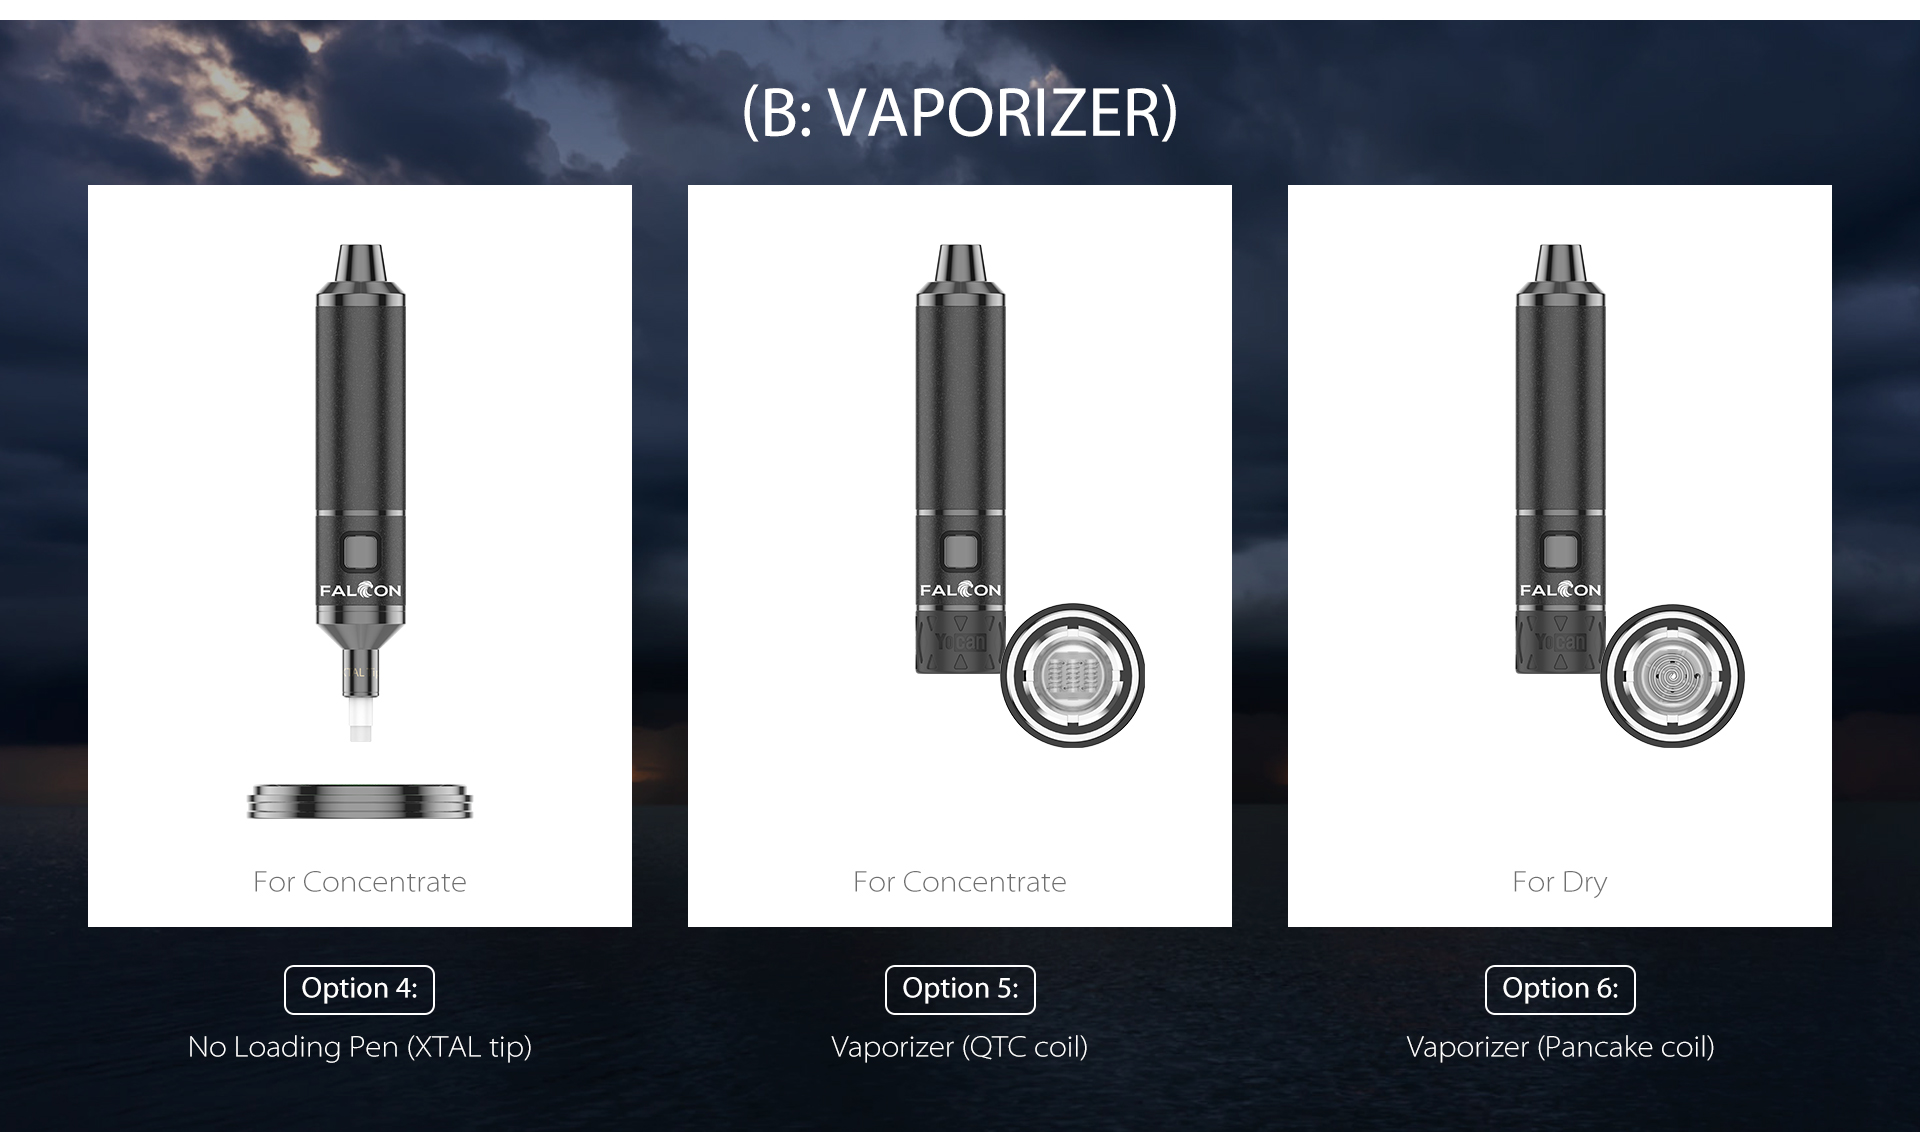 The technology behind the Falcon is advanced compared to other vaporizers on the market.